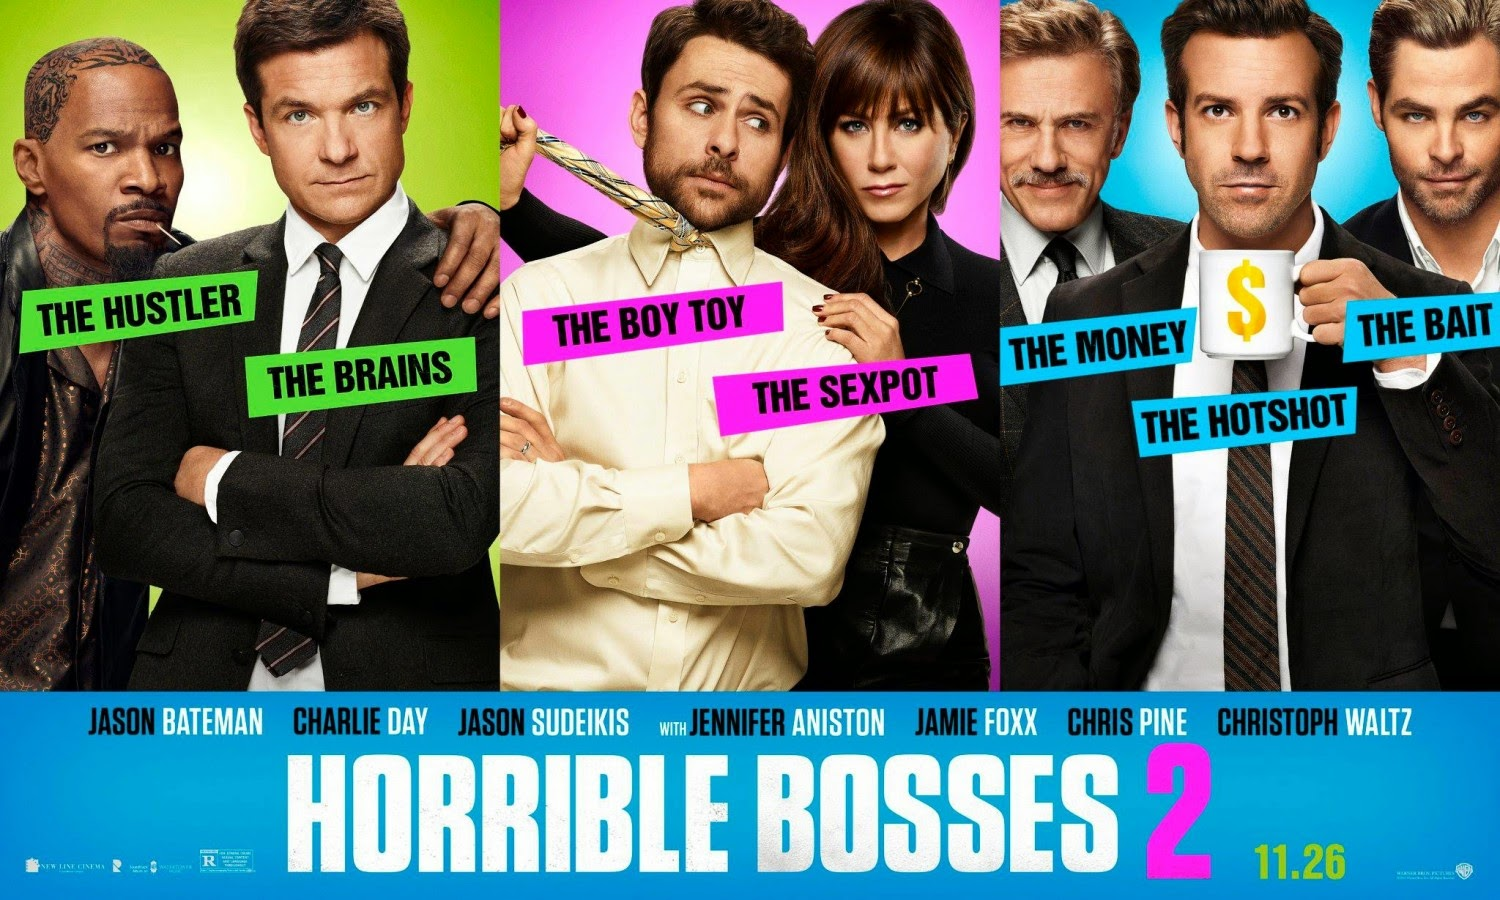 Official 'Horrible Bosses 2' Poster.